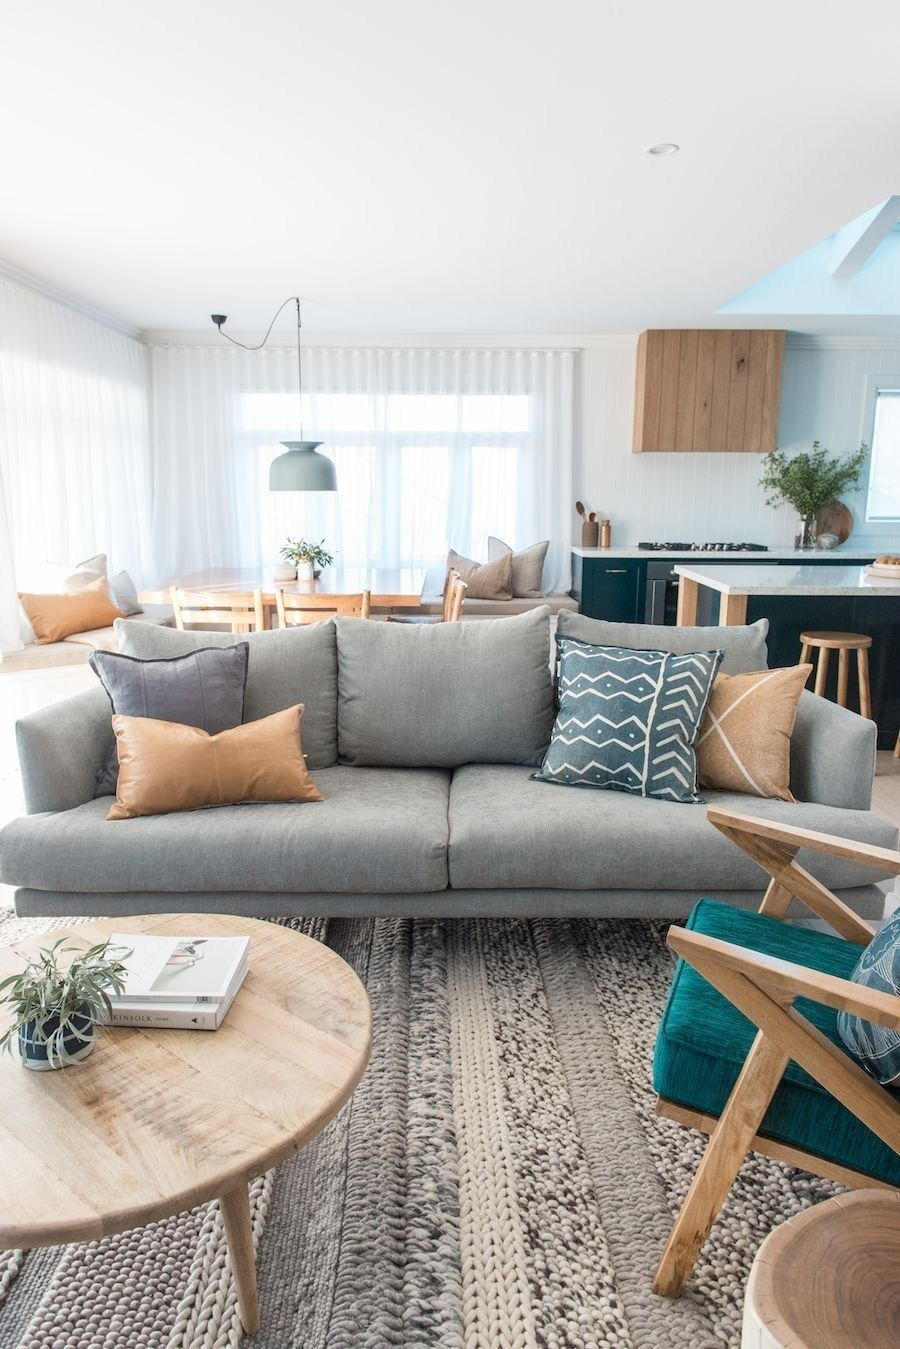 88 Cozy Apartment Living Room Decorating Ideas #apartmentlivingrooms